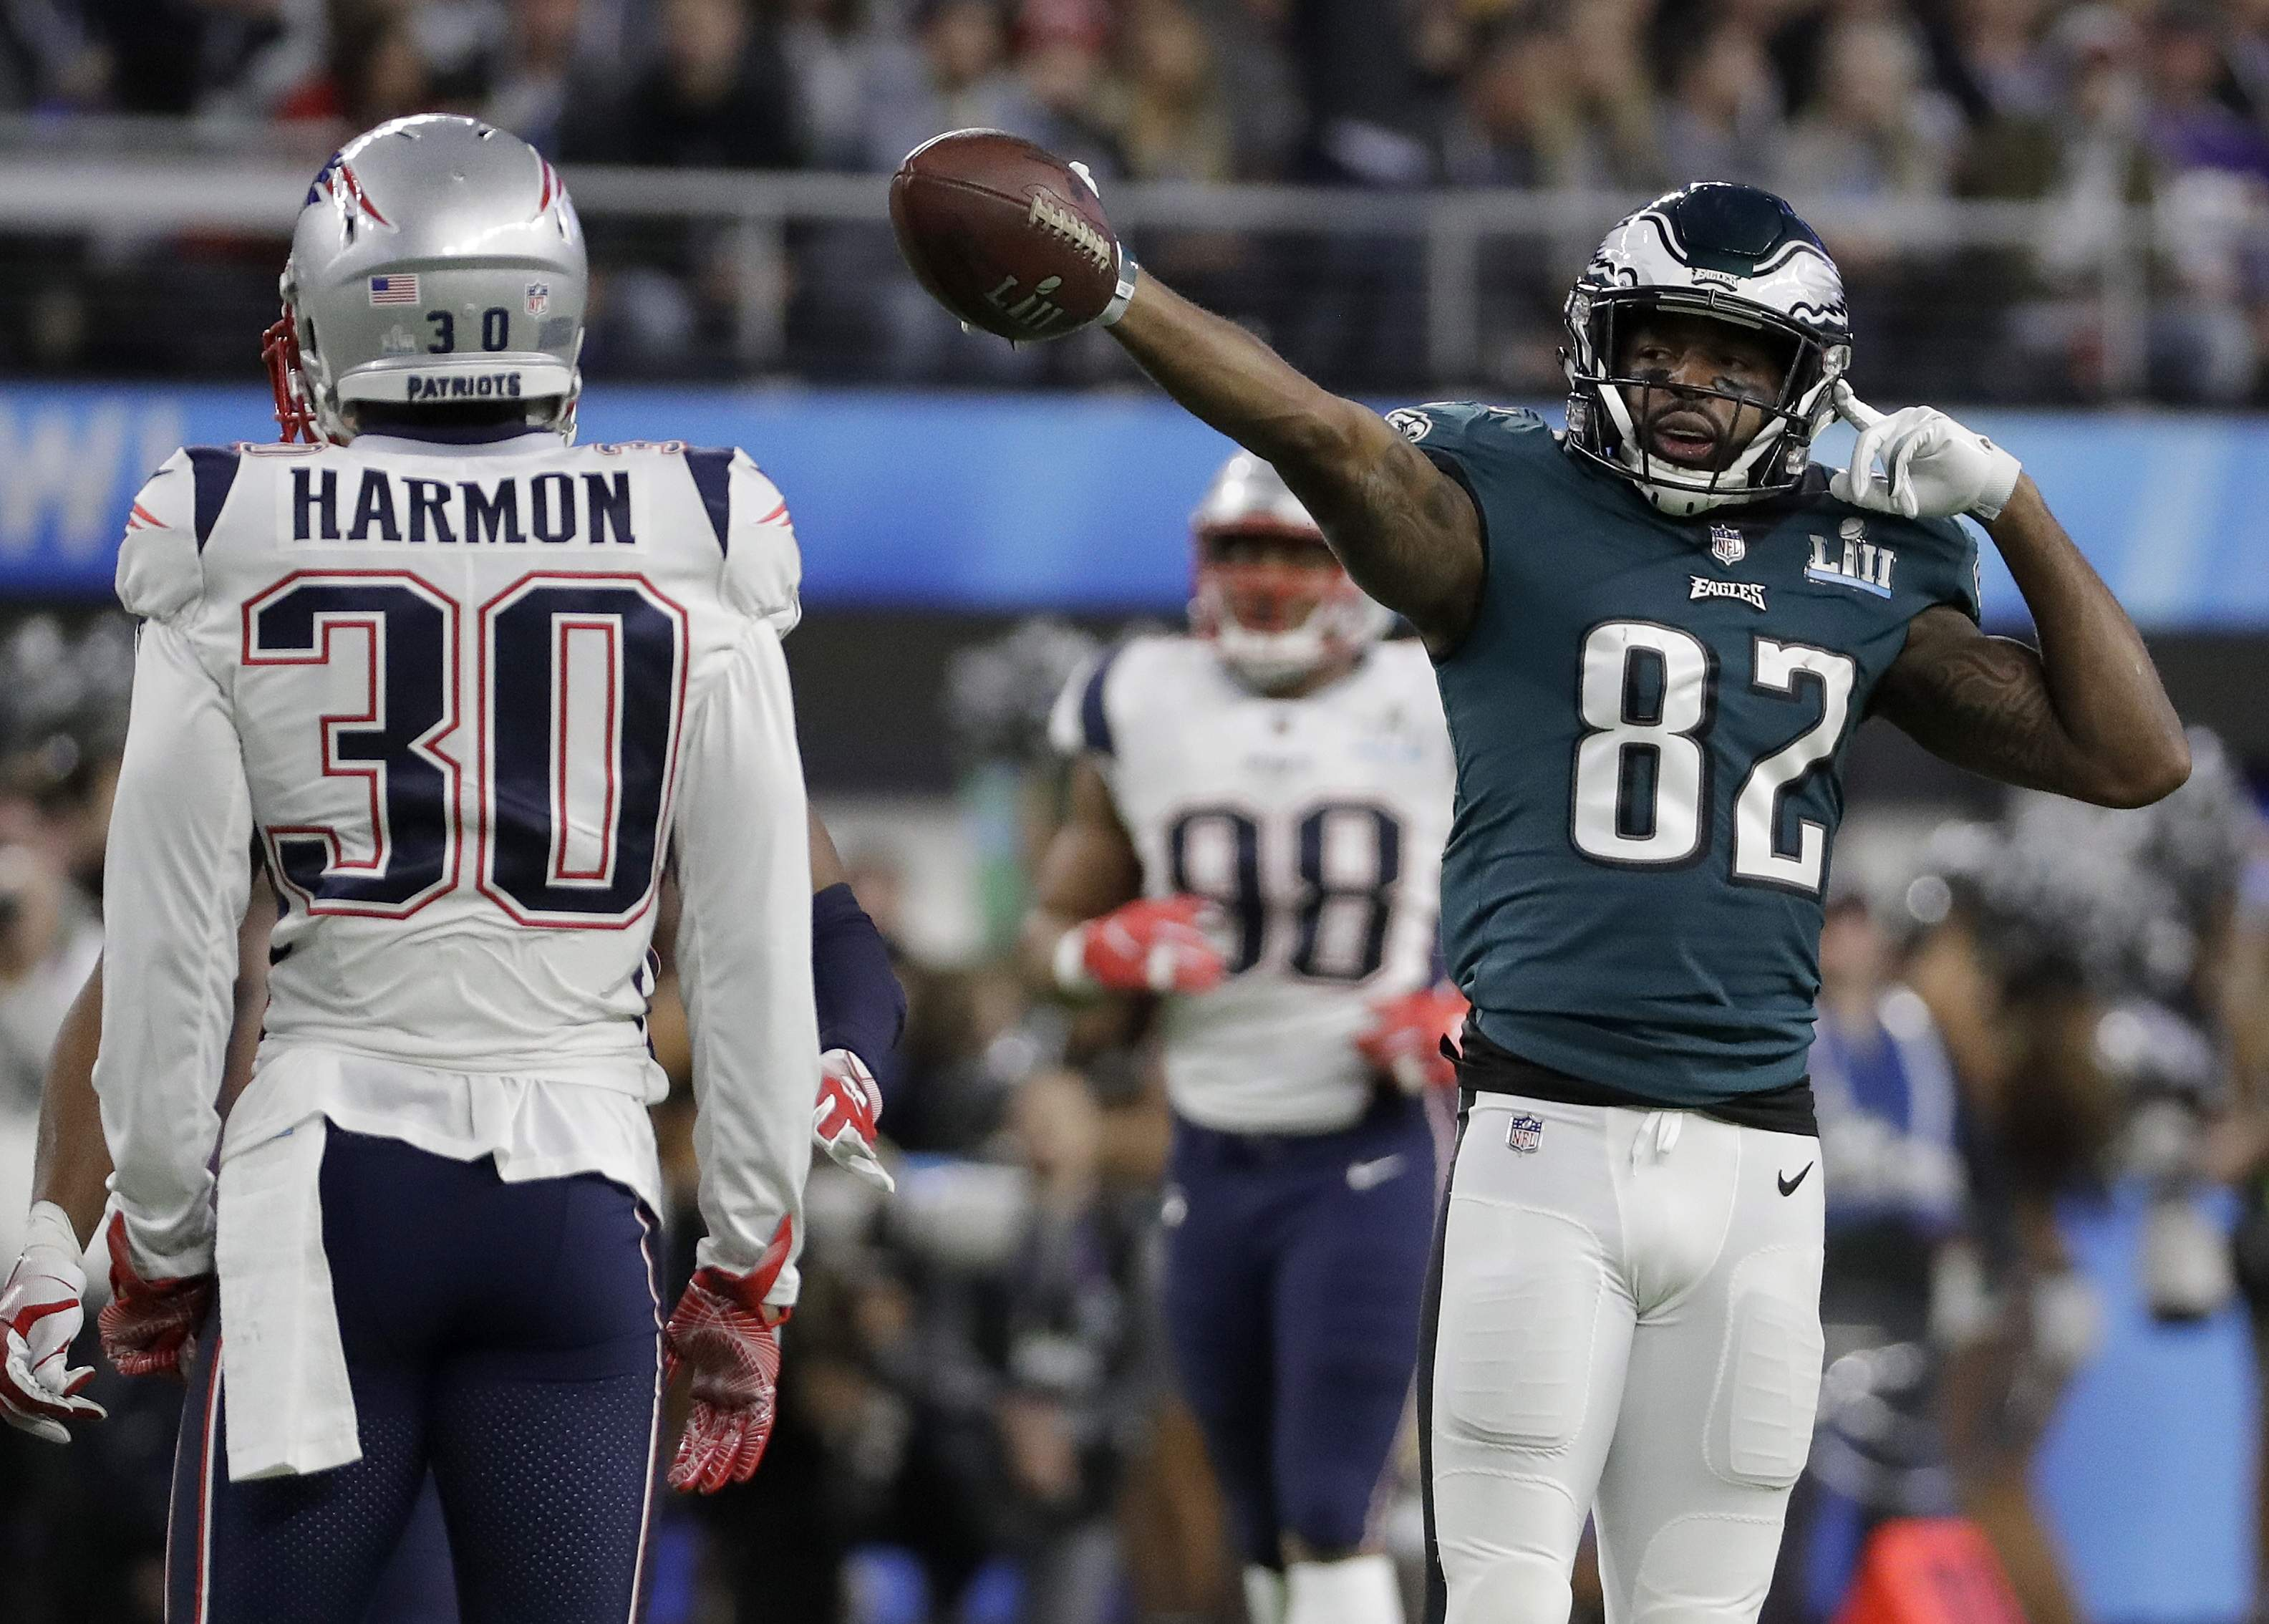 Philadelphia Eagles' Torrey Smith reacts to his first down catch during the first half of the NFL Super Bowl 52 football game against the New England Patriots Sunday, Feb. 4, 2018, in Minneapolis. (AP Photo/Mark Humphrey)